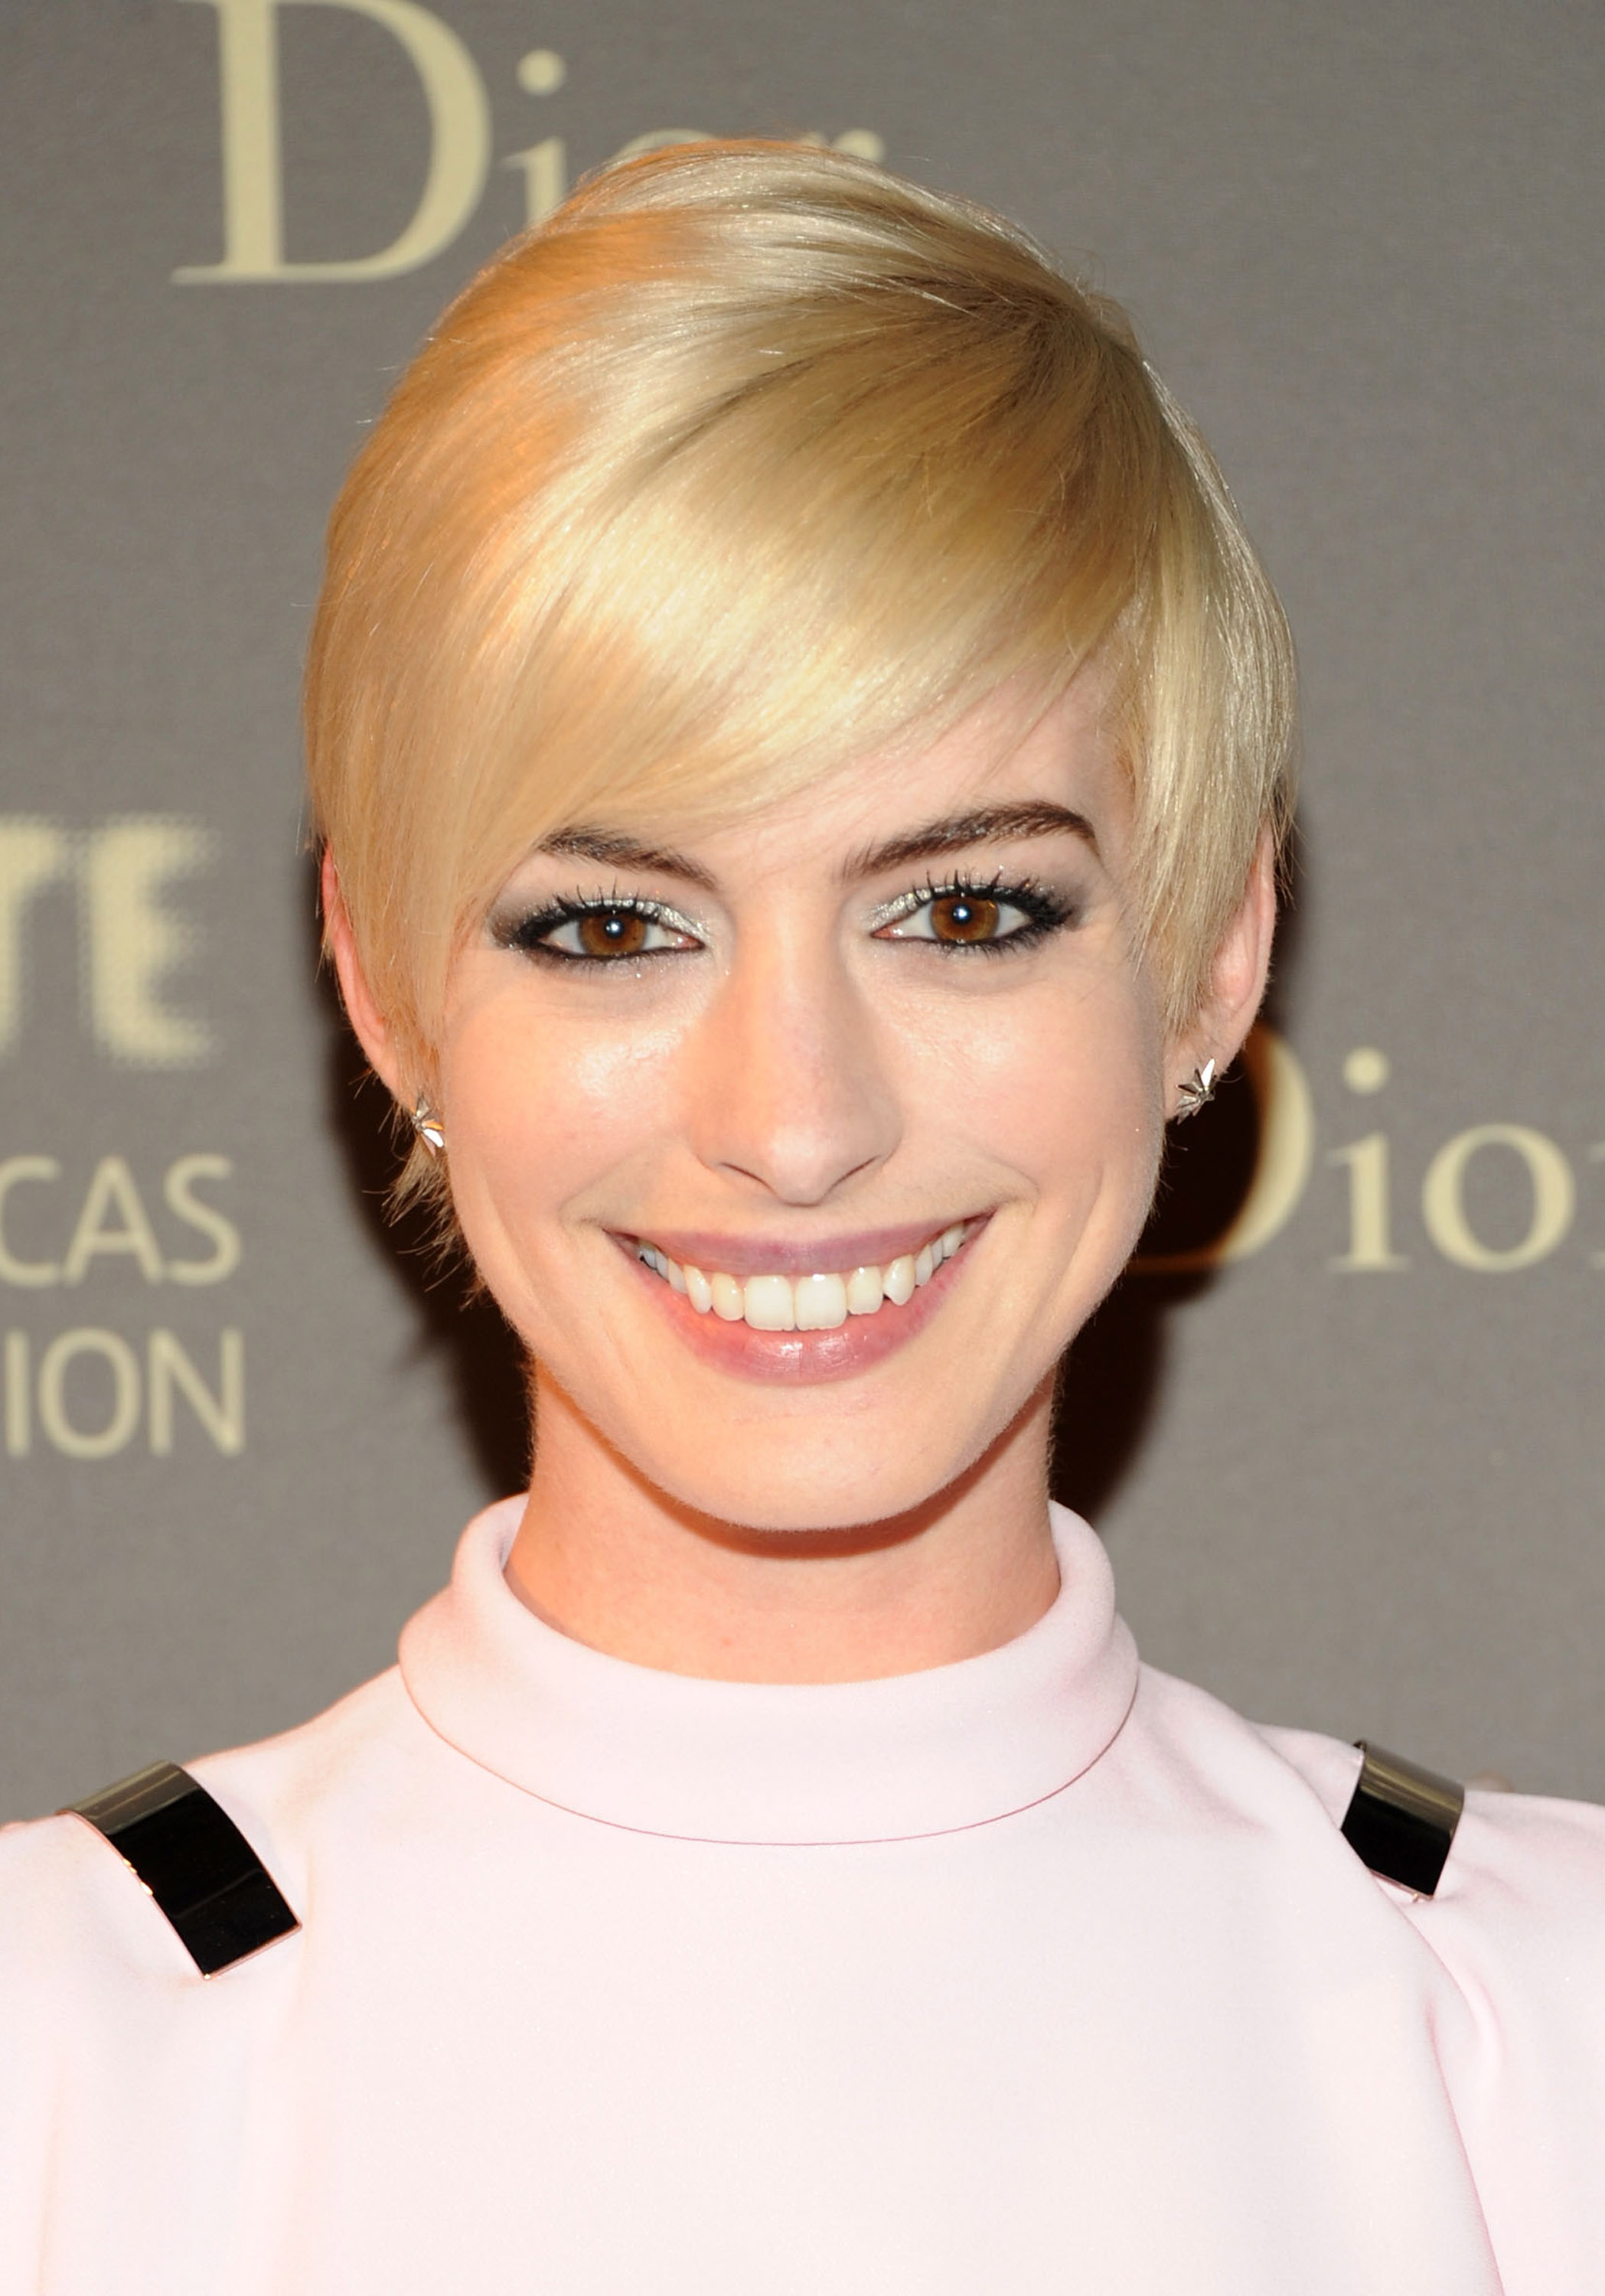 Astonishing 27 Short Hairstyles For Women How To Style Short Haircuts Short Hairstyles Gunalazisus